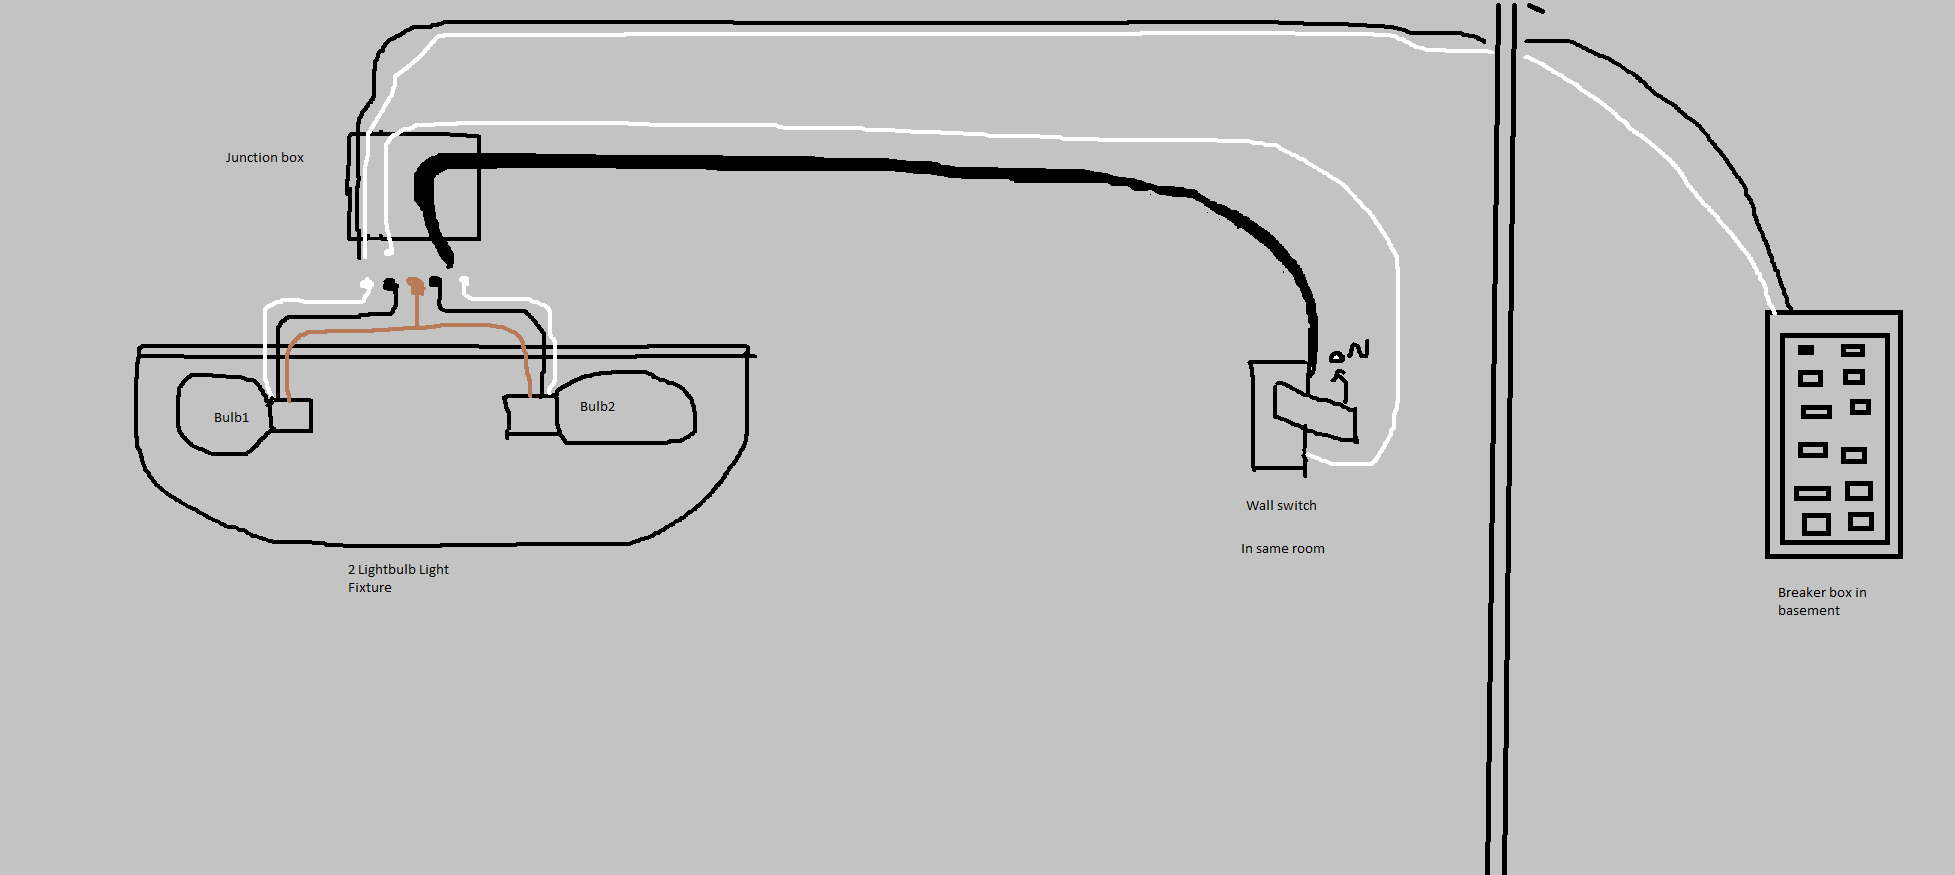 doorbell wiring diagram 4 8 note